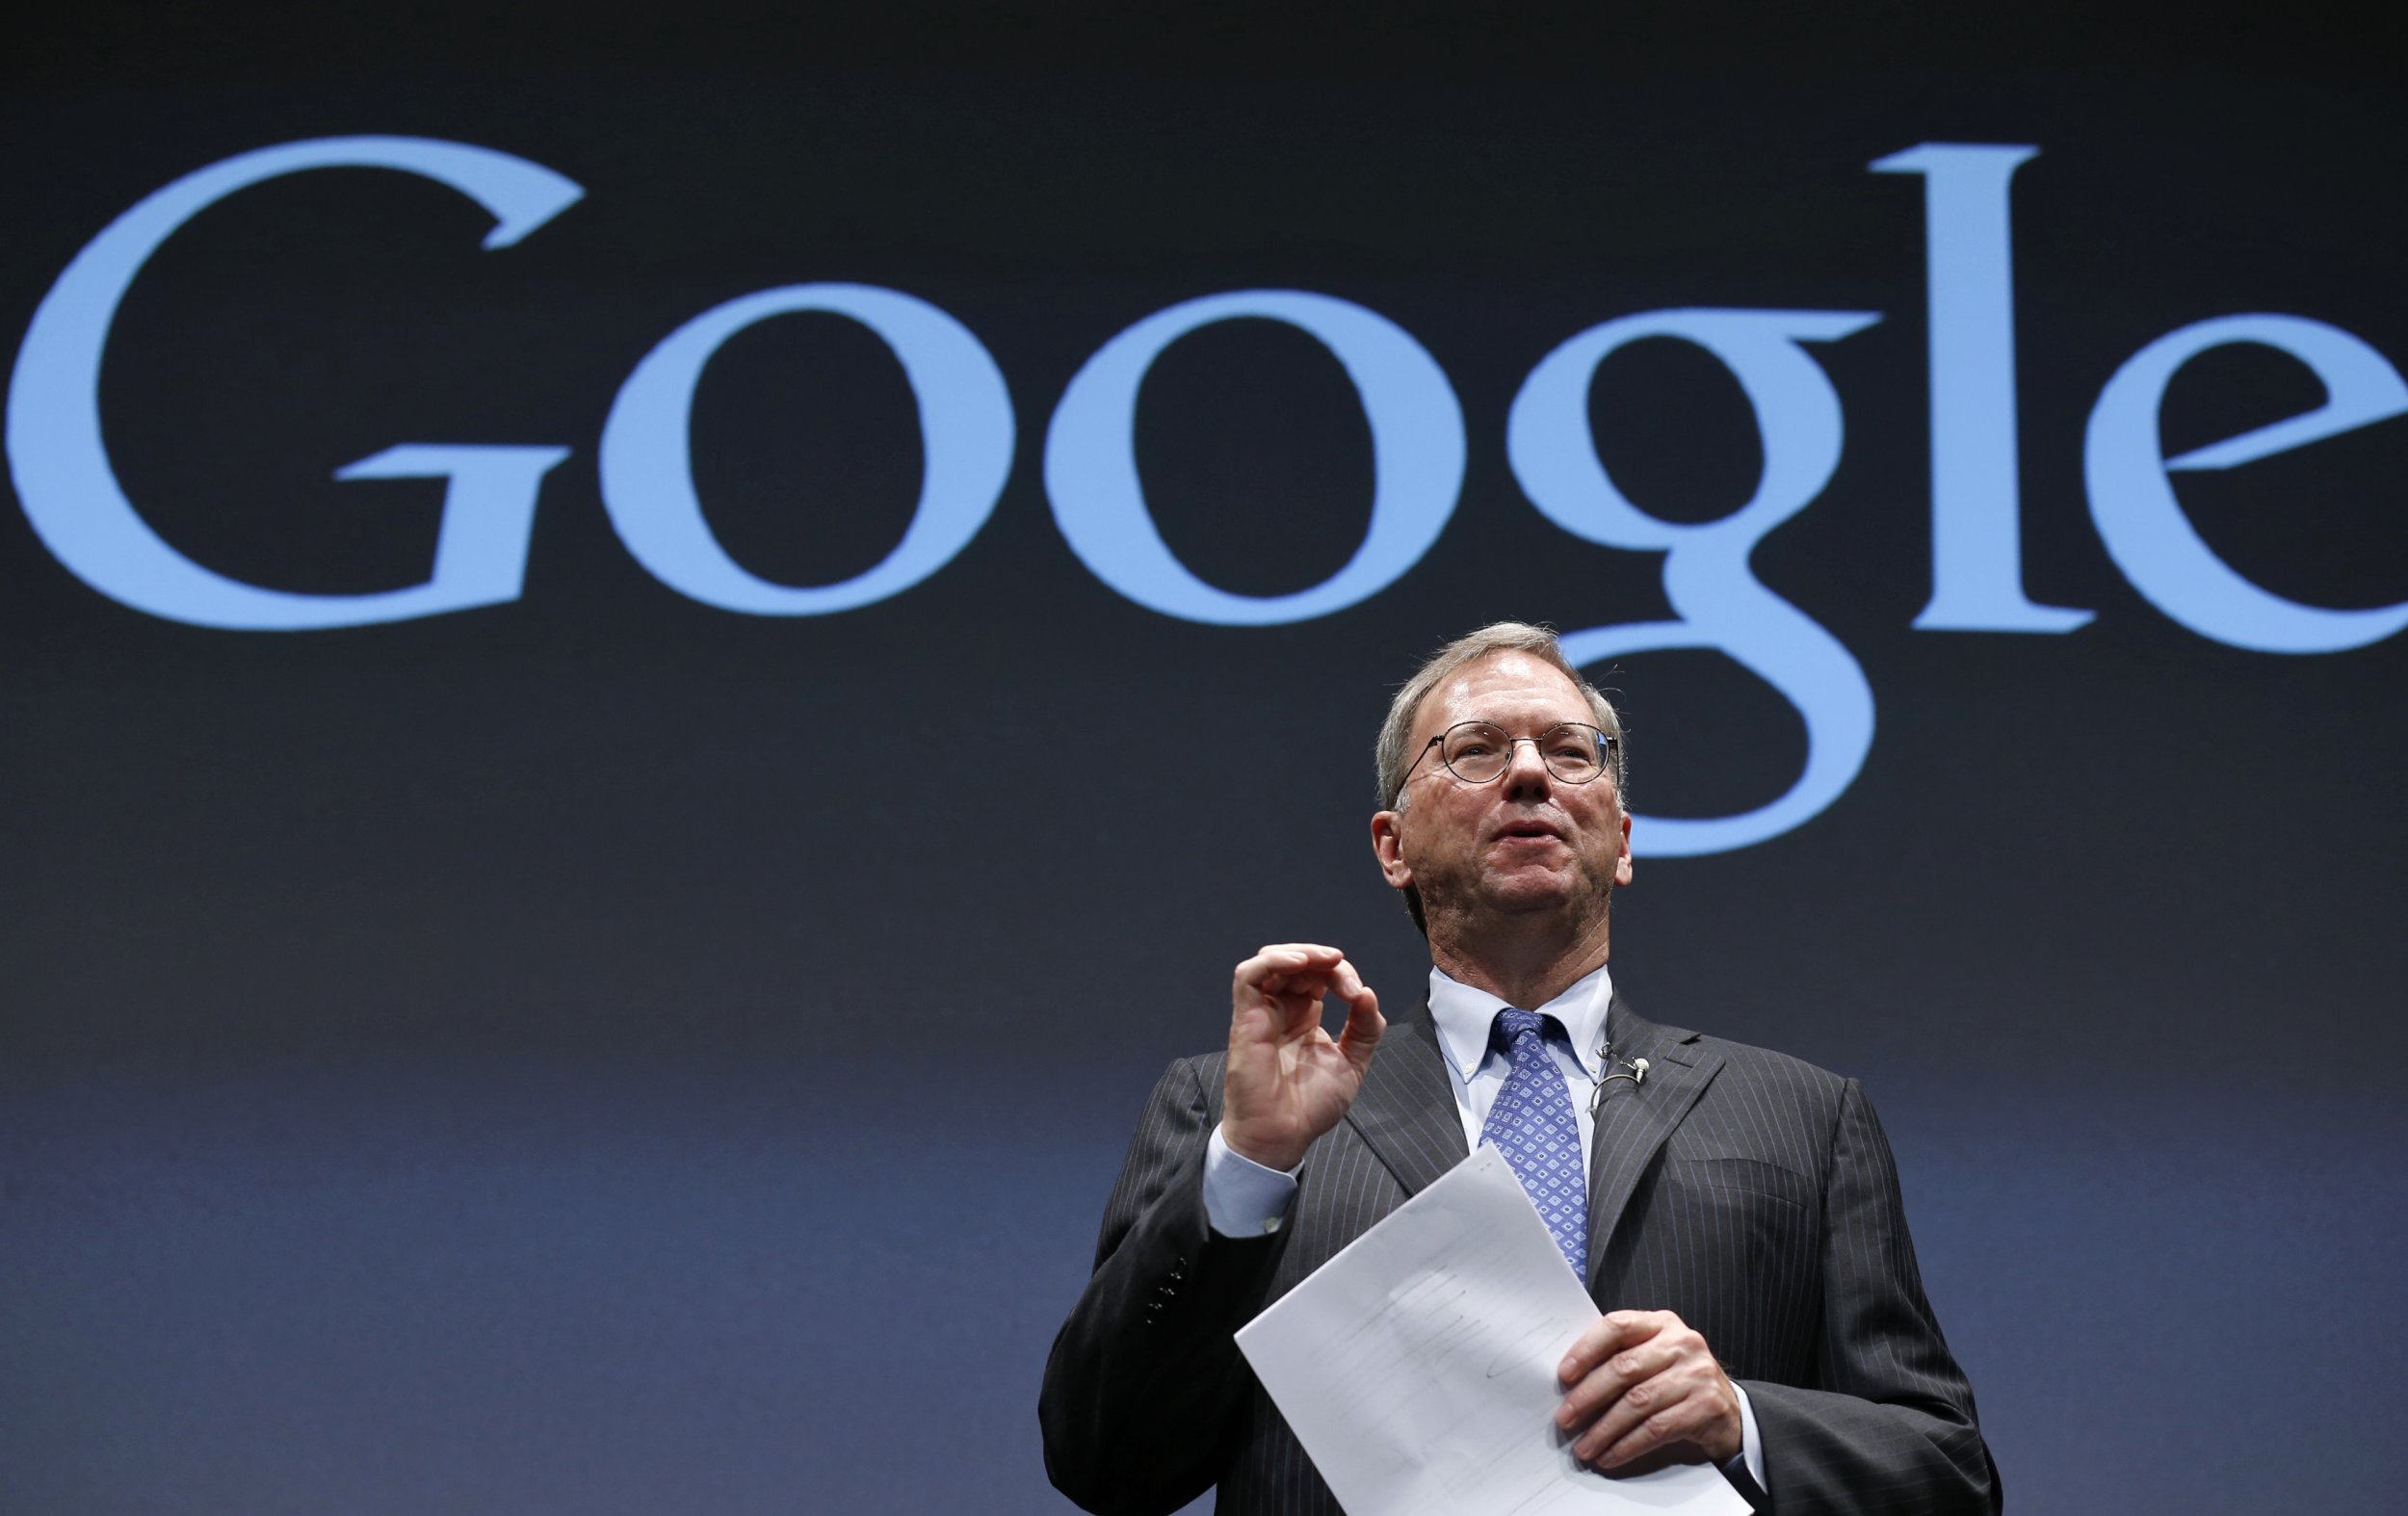 Eric Schmidt of Google speaking to an audience